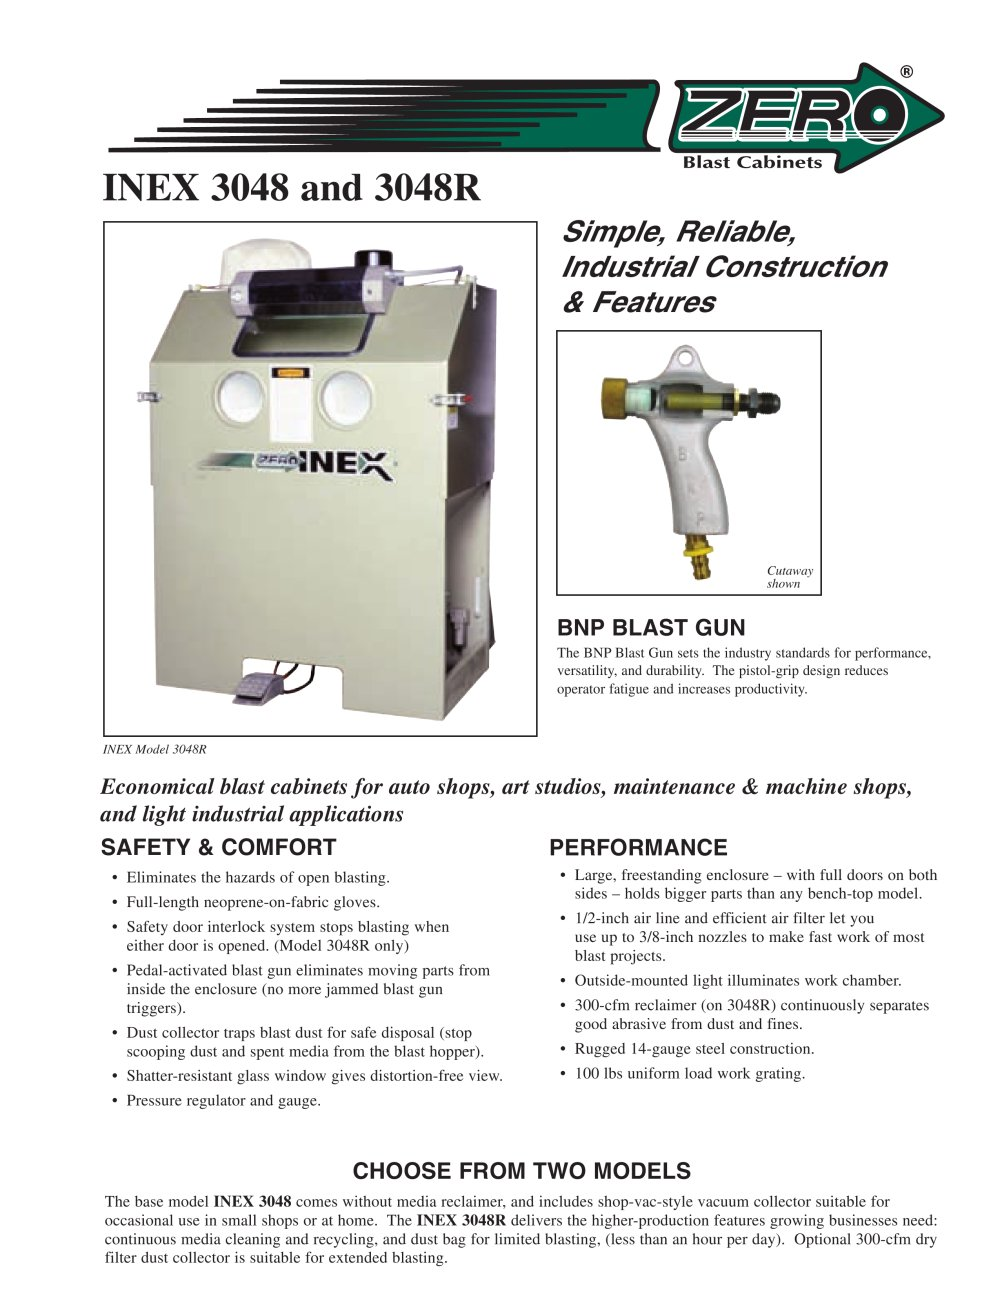 Clemco Industries Blast Cabinets Inex Blast Cabinet Rev E Clemco Industries Pdf Catalogue